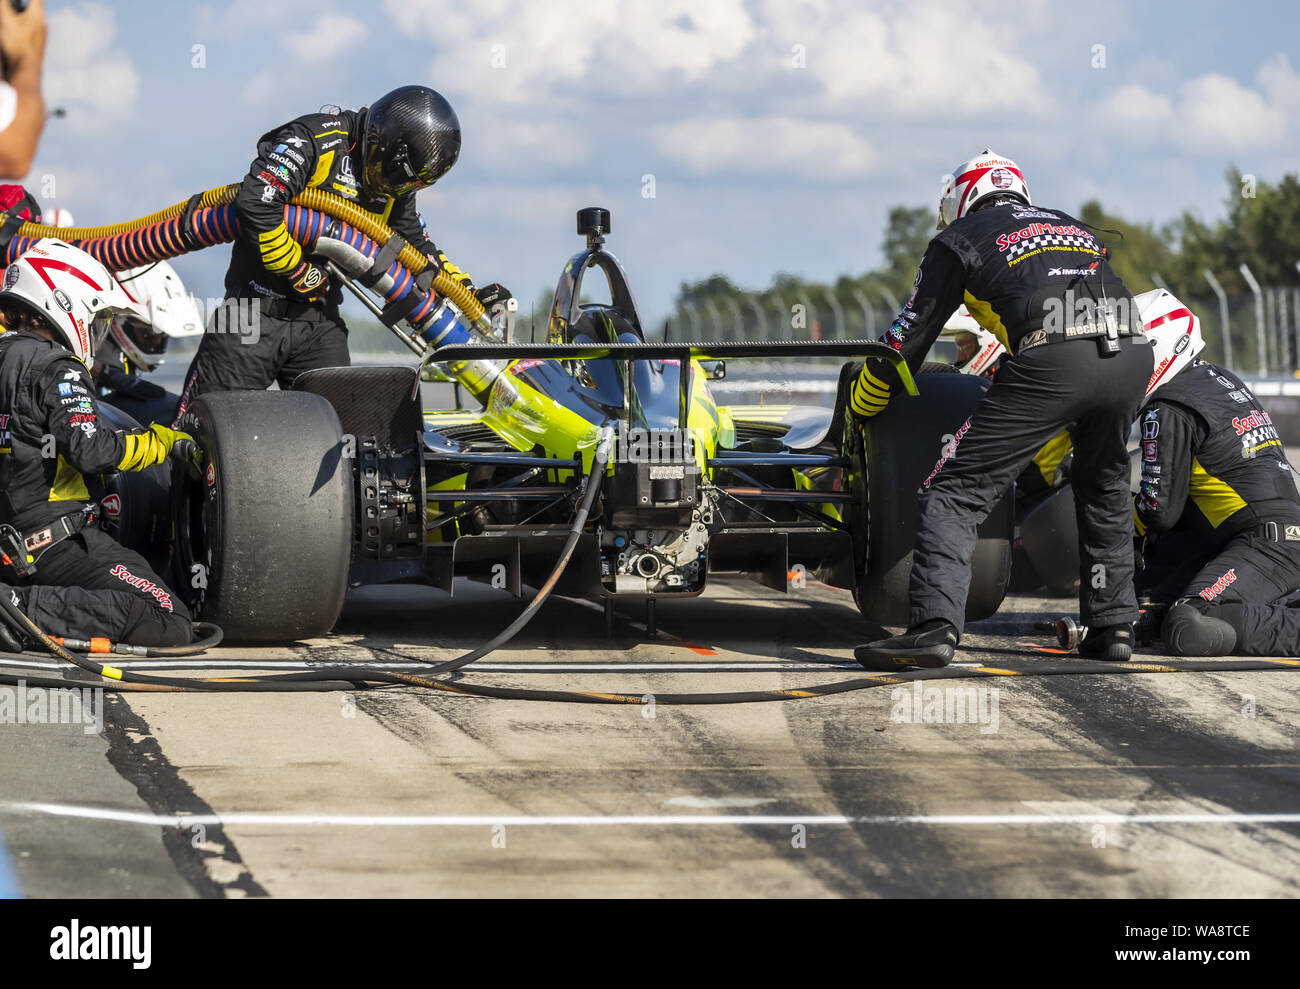 Long Pond, Pennsylvania, USA. 18th Aug, 2019. SEBASTIEN BOURDAIS (18) of Le Mans, France brings his car in for service during the ABC Supply 500 at Pocono Raceway in Long Pond Pennsylvania. (Credit Image: © Colin J Mayr Grindstone Media/ASP) Stock Photo